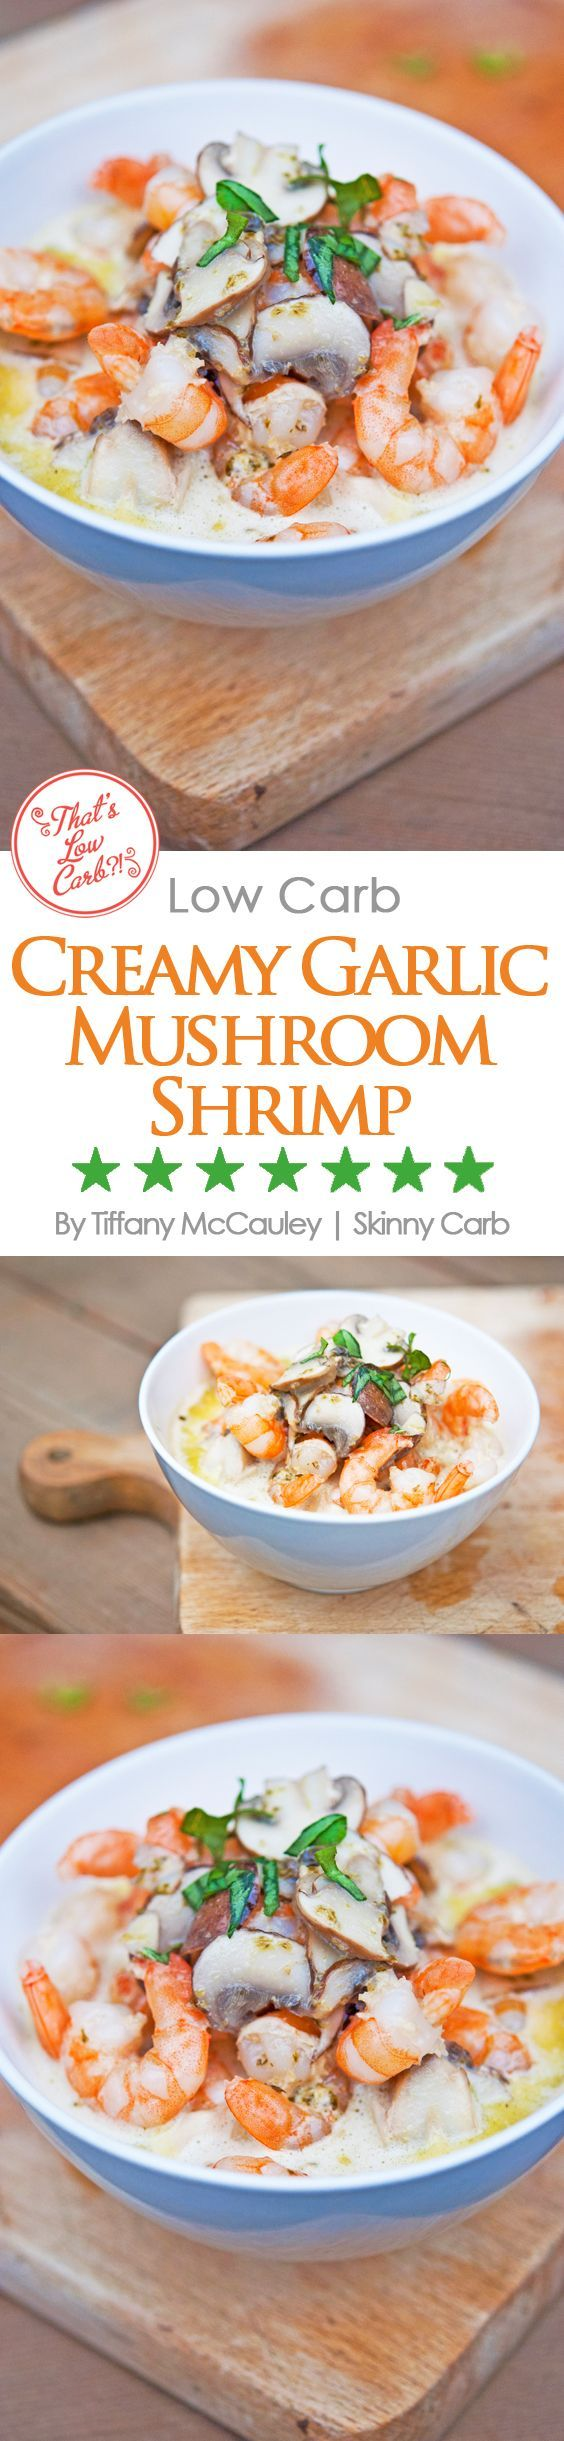 This Low Carb Creamy Garlic Mushroom Shrimp Recipe is decadent, has plenty of fats and will keep you full long after you eat. ~ http://www.thatslowcarb.com